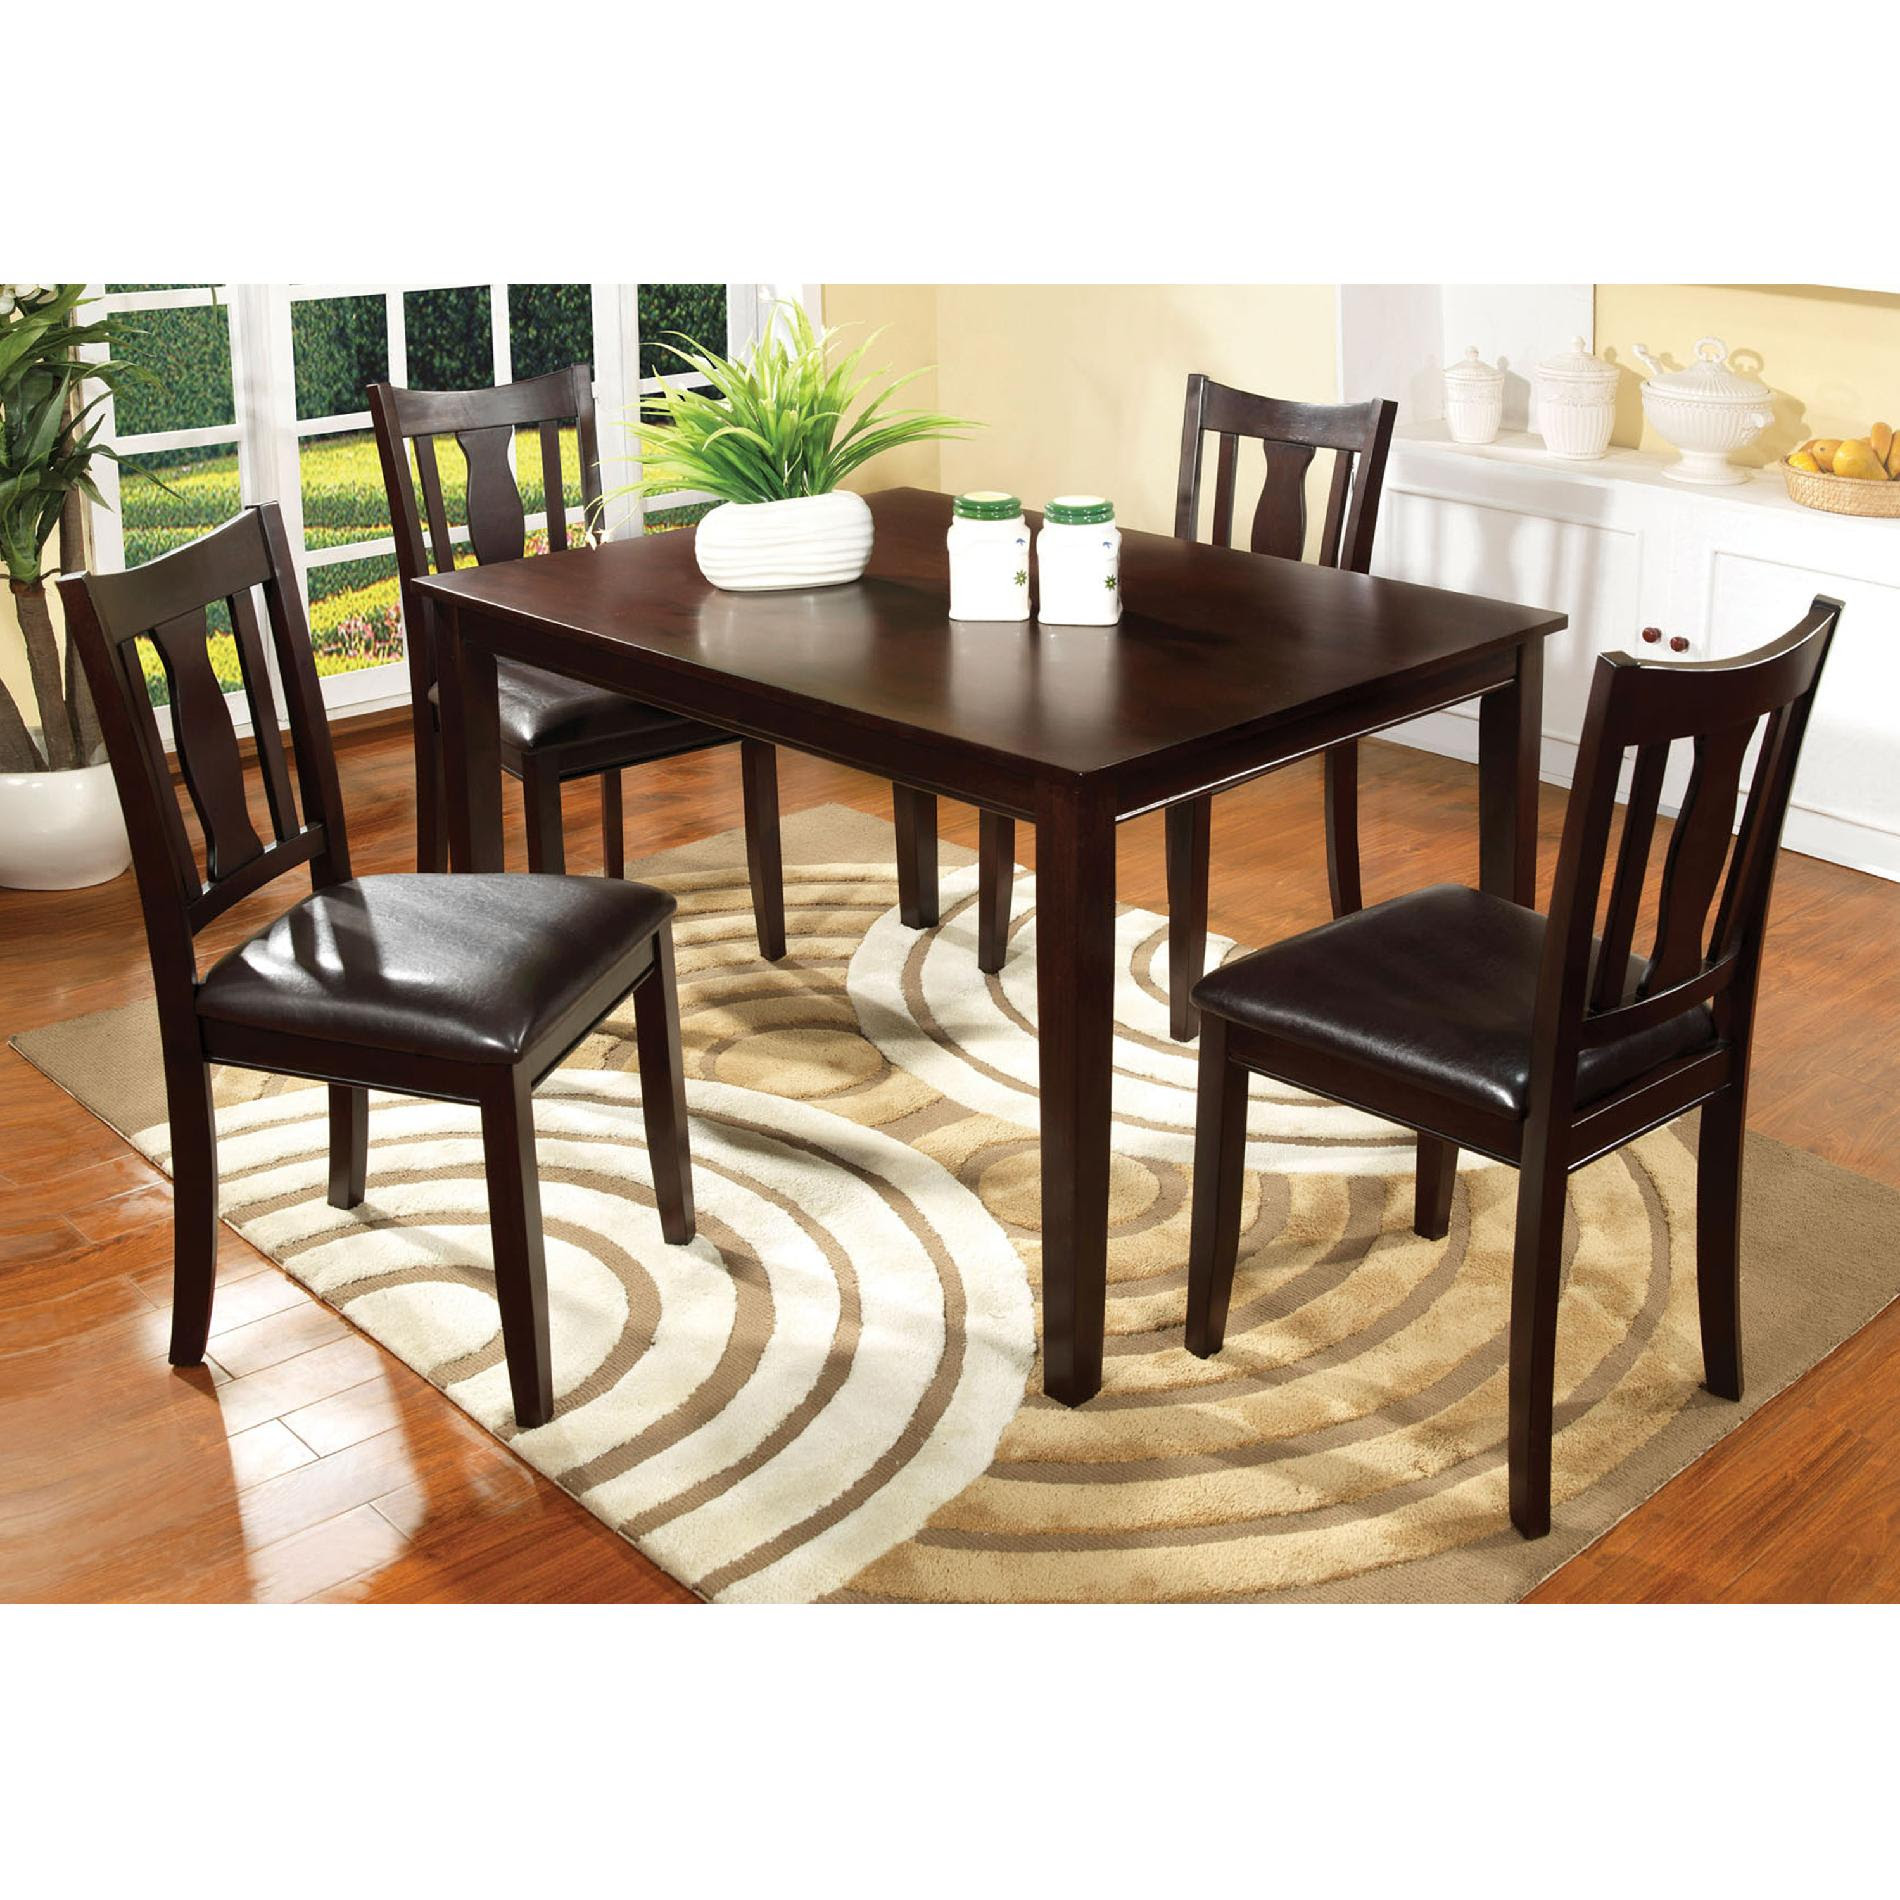 Kitchen \u0026 Dining Furniture: Tables, Chairs \u0026 Stools: Cheap Sets  Sears Outlet